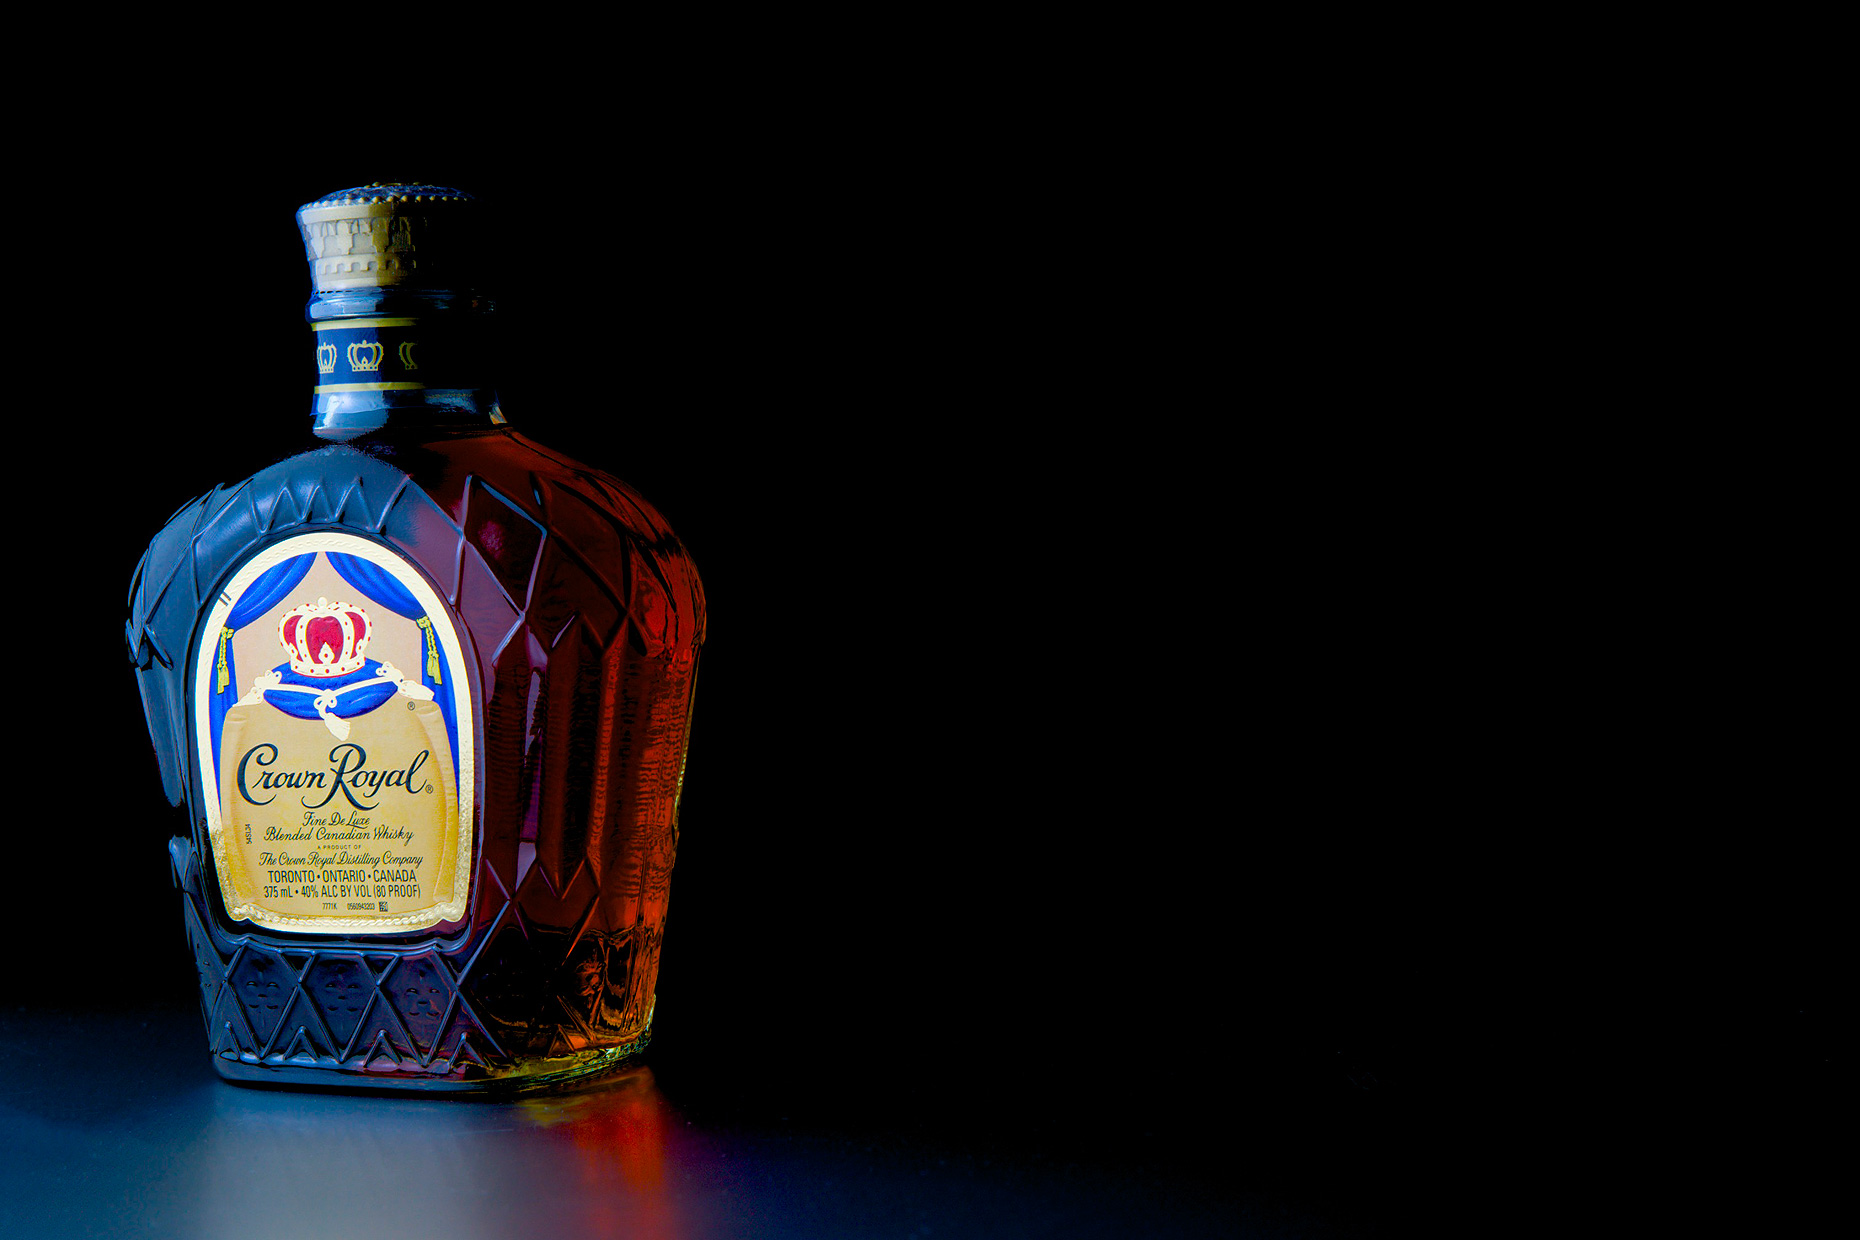 crown-royal-bottle.jpg